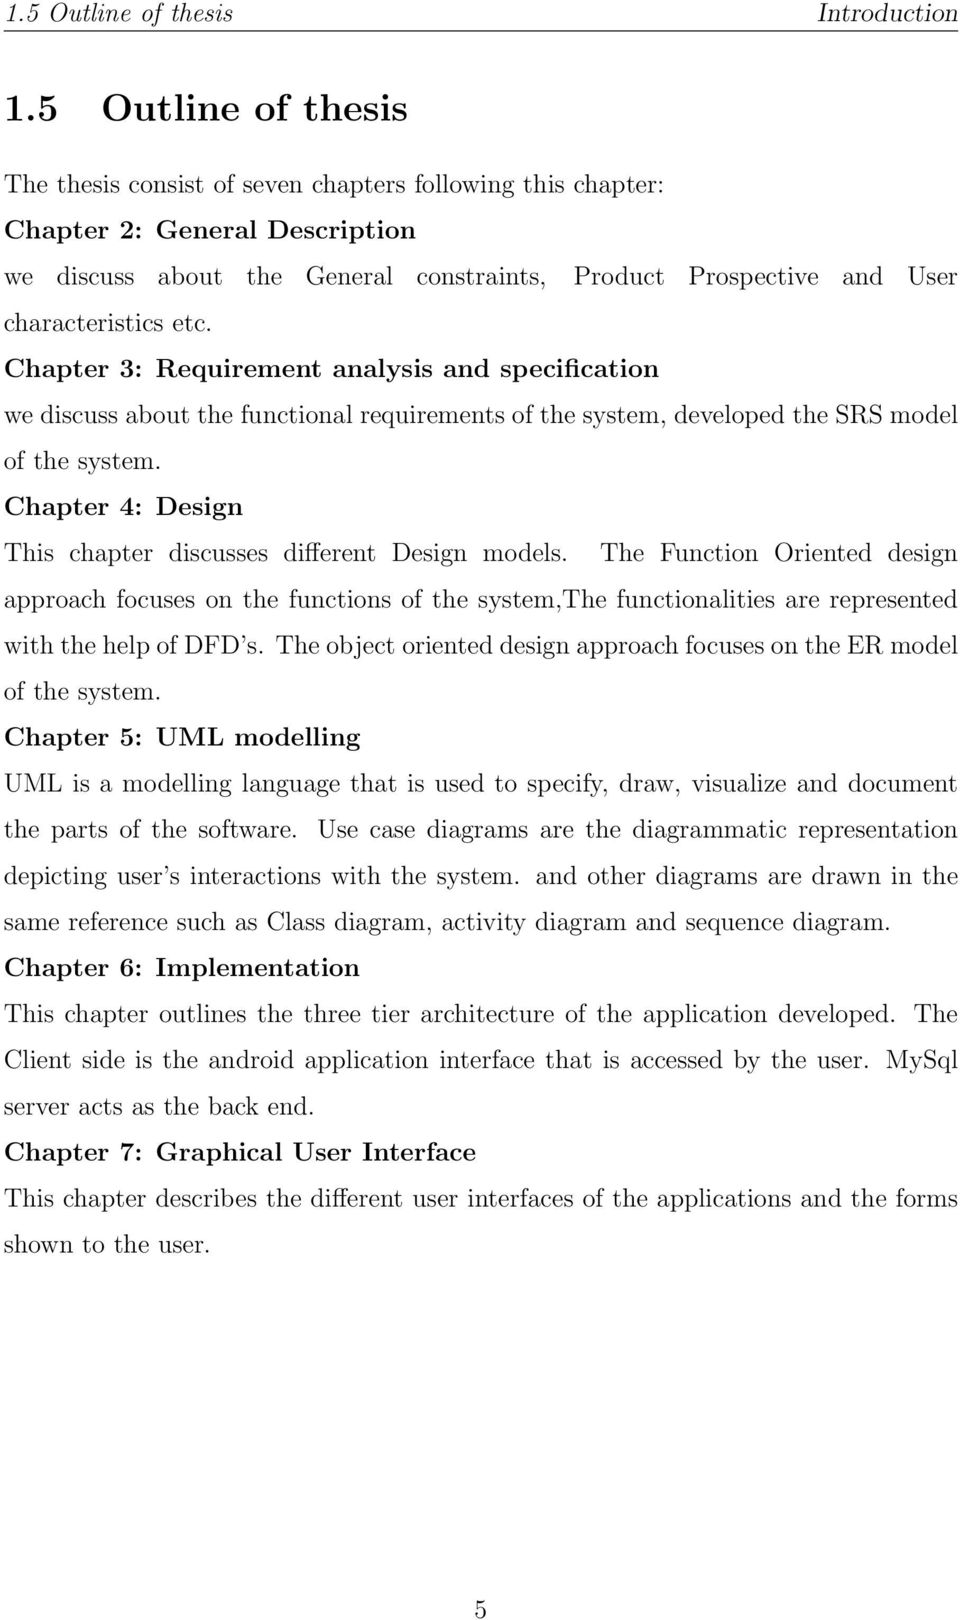 thesis on biometrics Thesis statement on biometrics multimodal biometrics feature: topics by nbsp biometrics is a unique, measurable physiological or behavioural characteristic of a person and finds extensive applications in authentication and tailed discussion on the saturableavailable problem statement:.